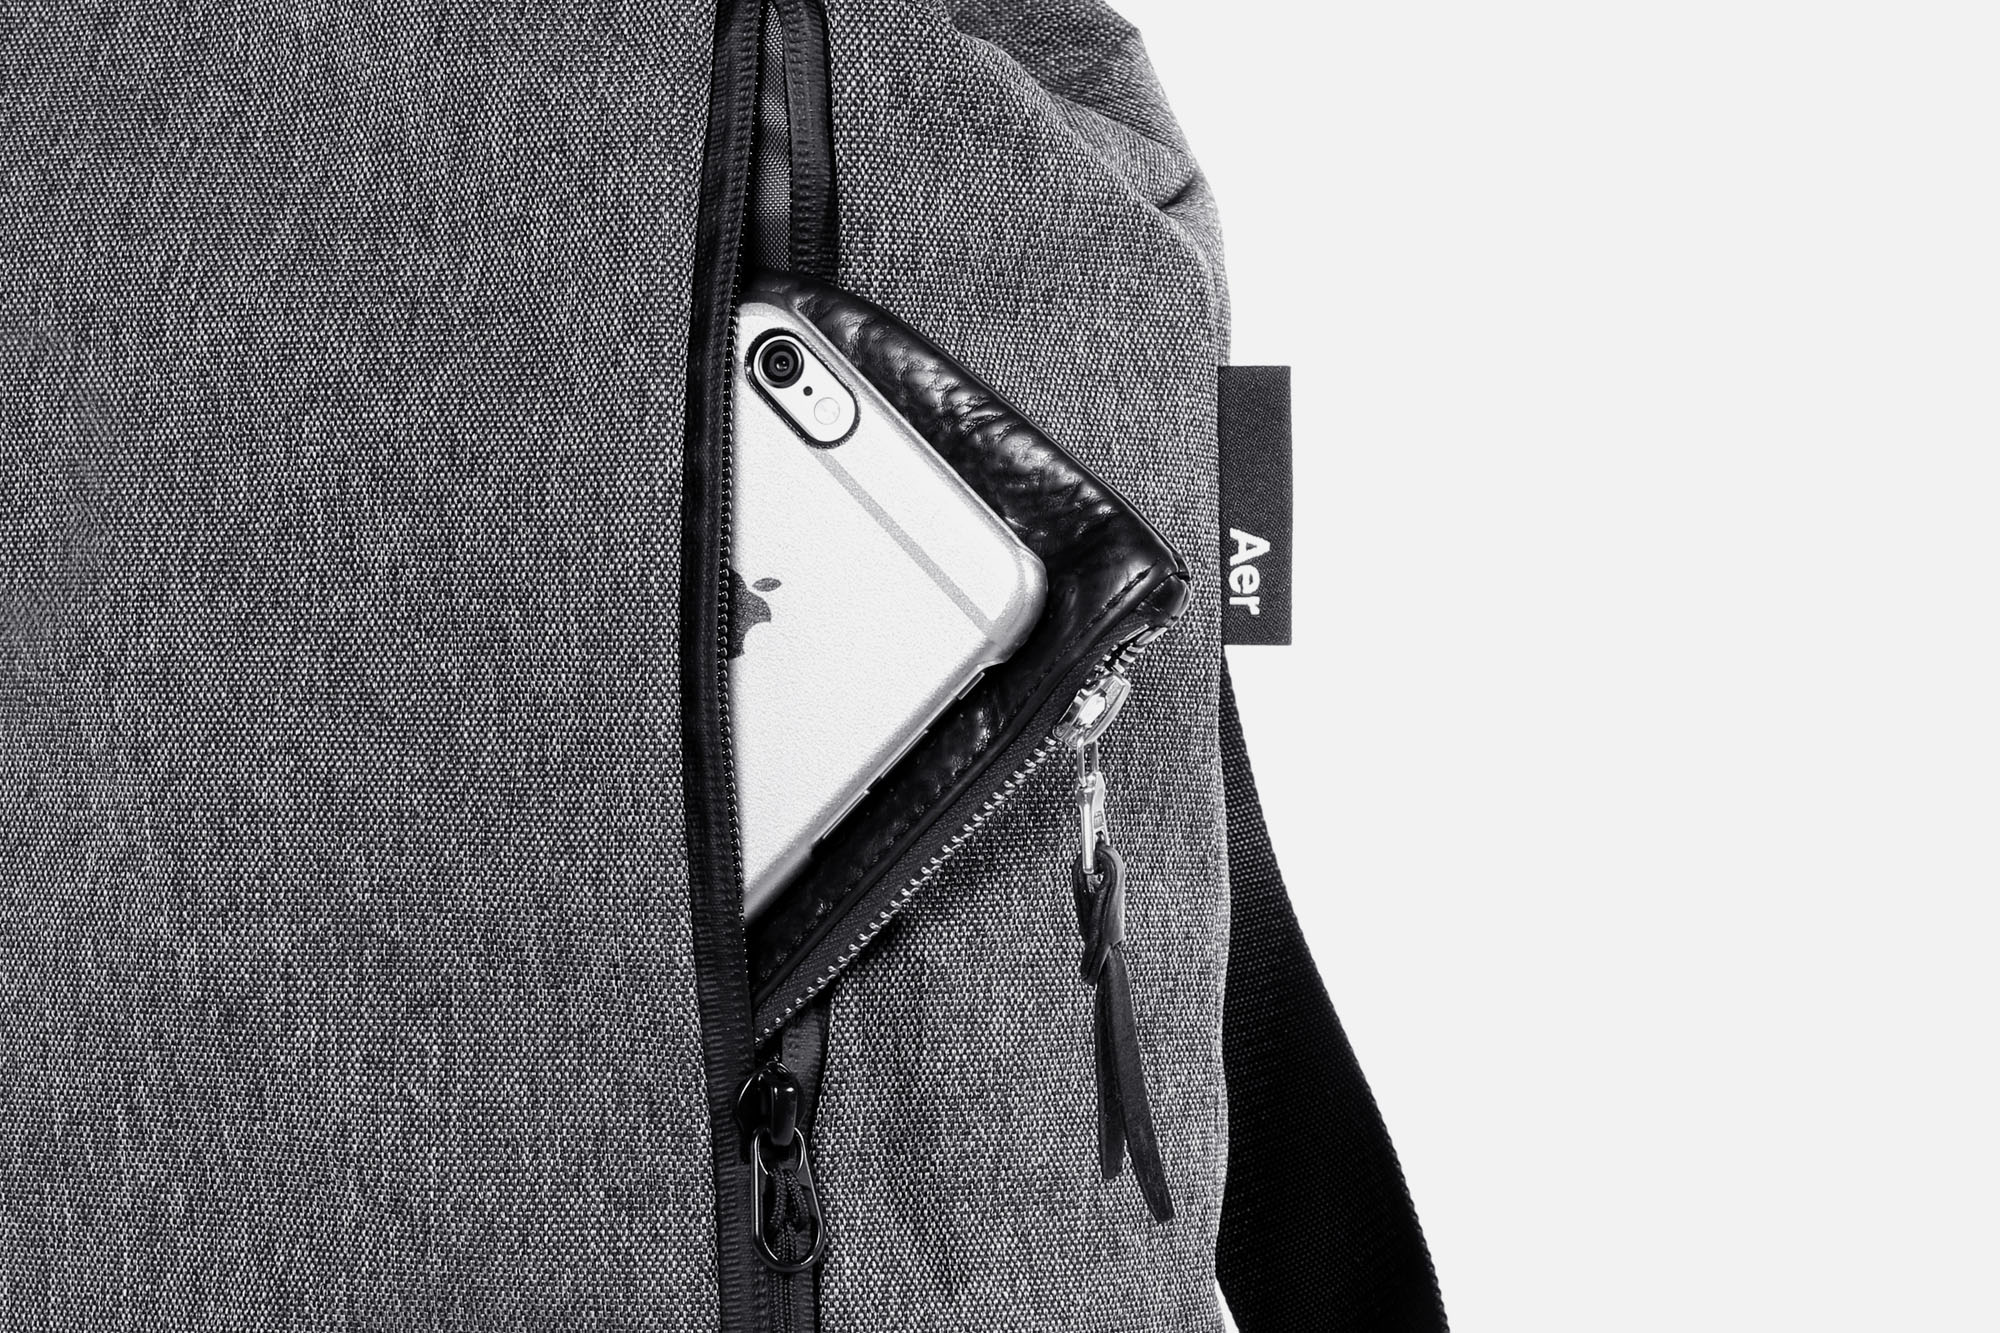 Aer Sling Bag Phone Pocket